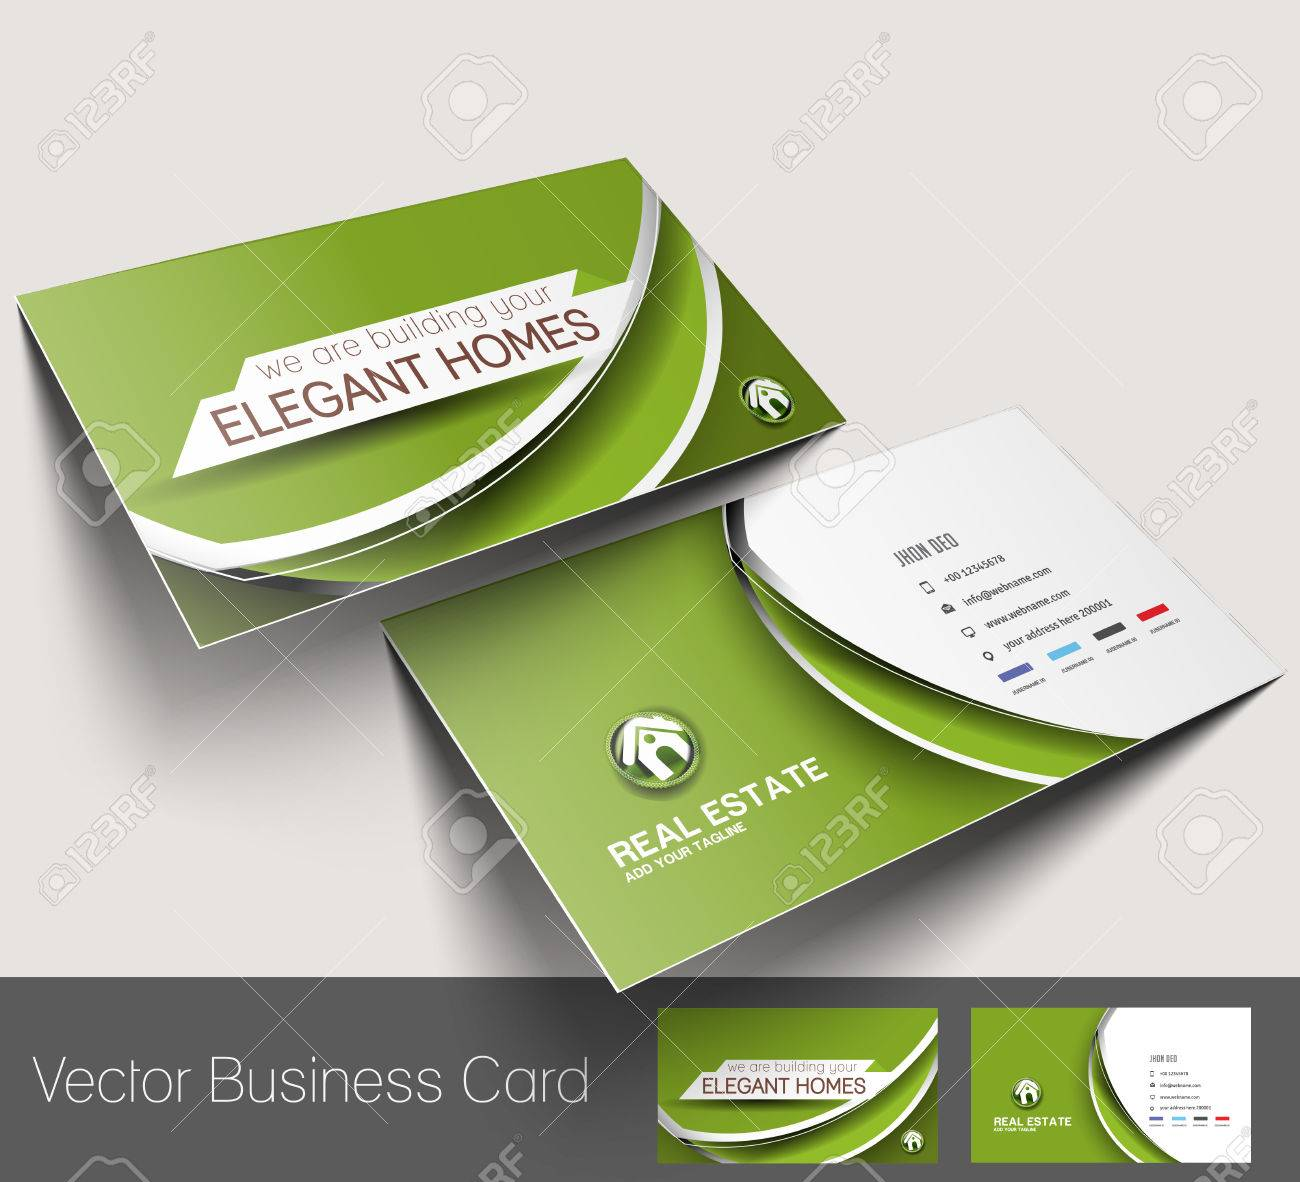 Real estate agent business card set template royalty free cliparts real estate agent business card set template stock vector 27359480 reheart Images